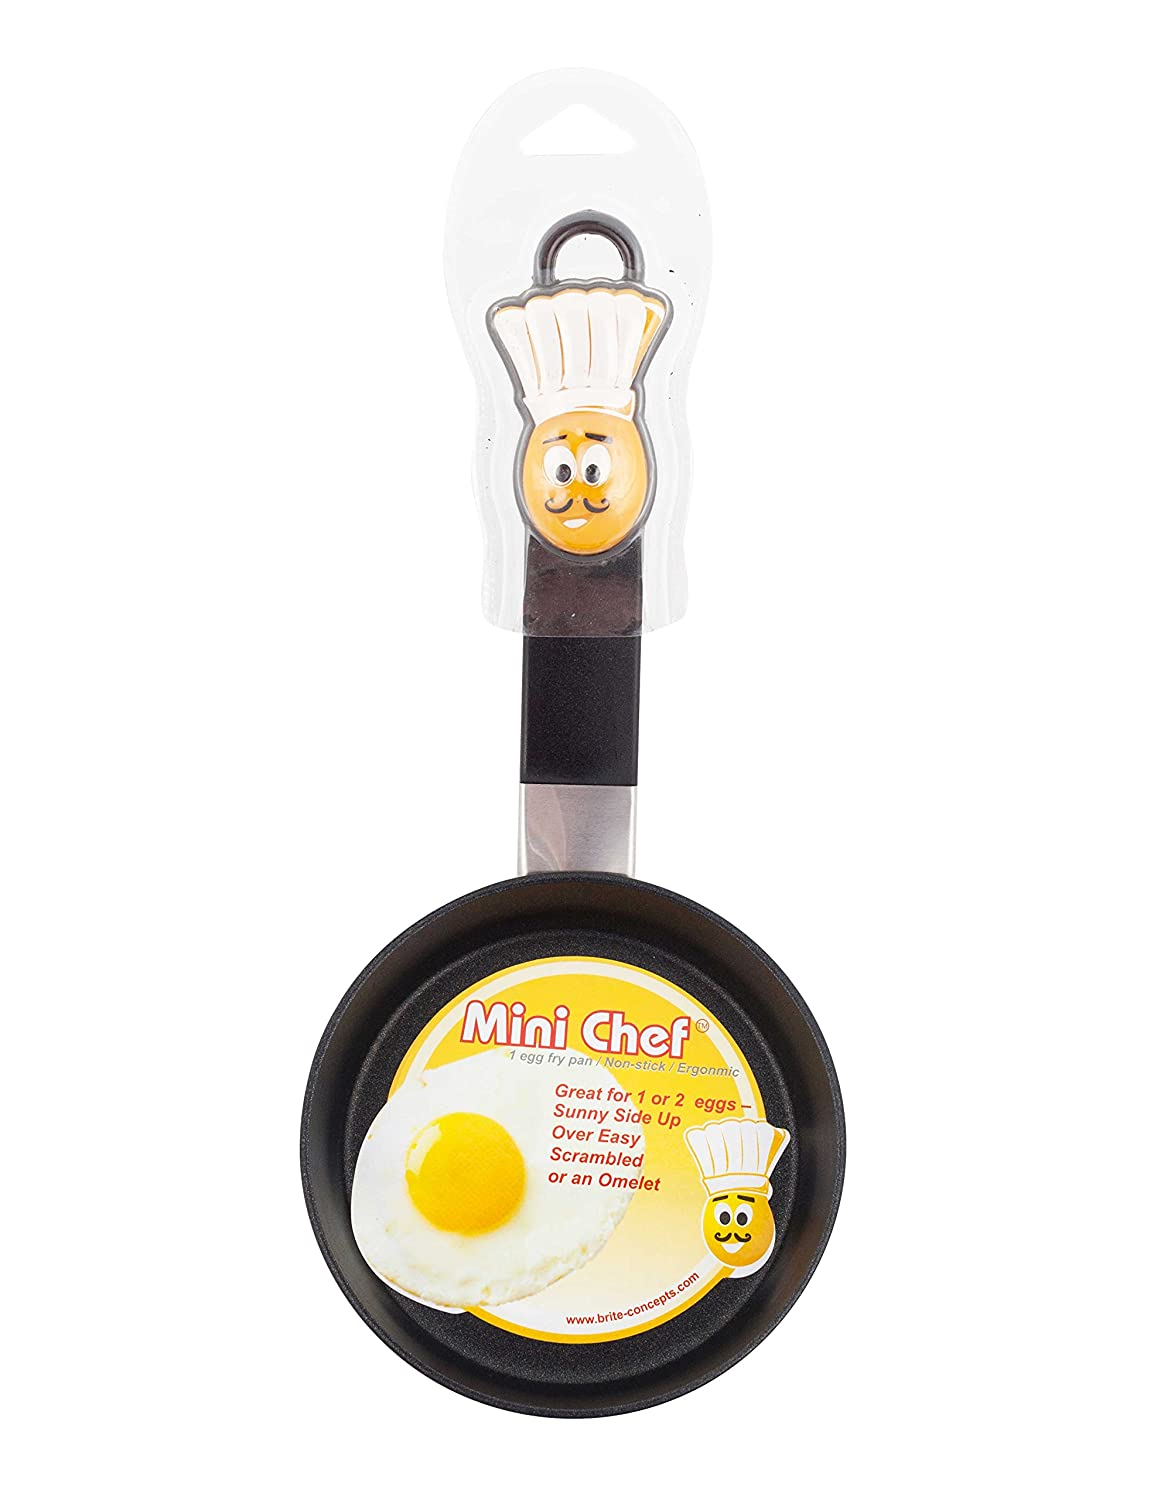 Brite Concepts, Mini Chef 1 Egg Fry Pan, 2-pack